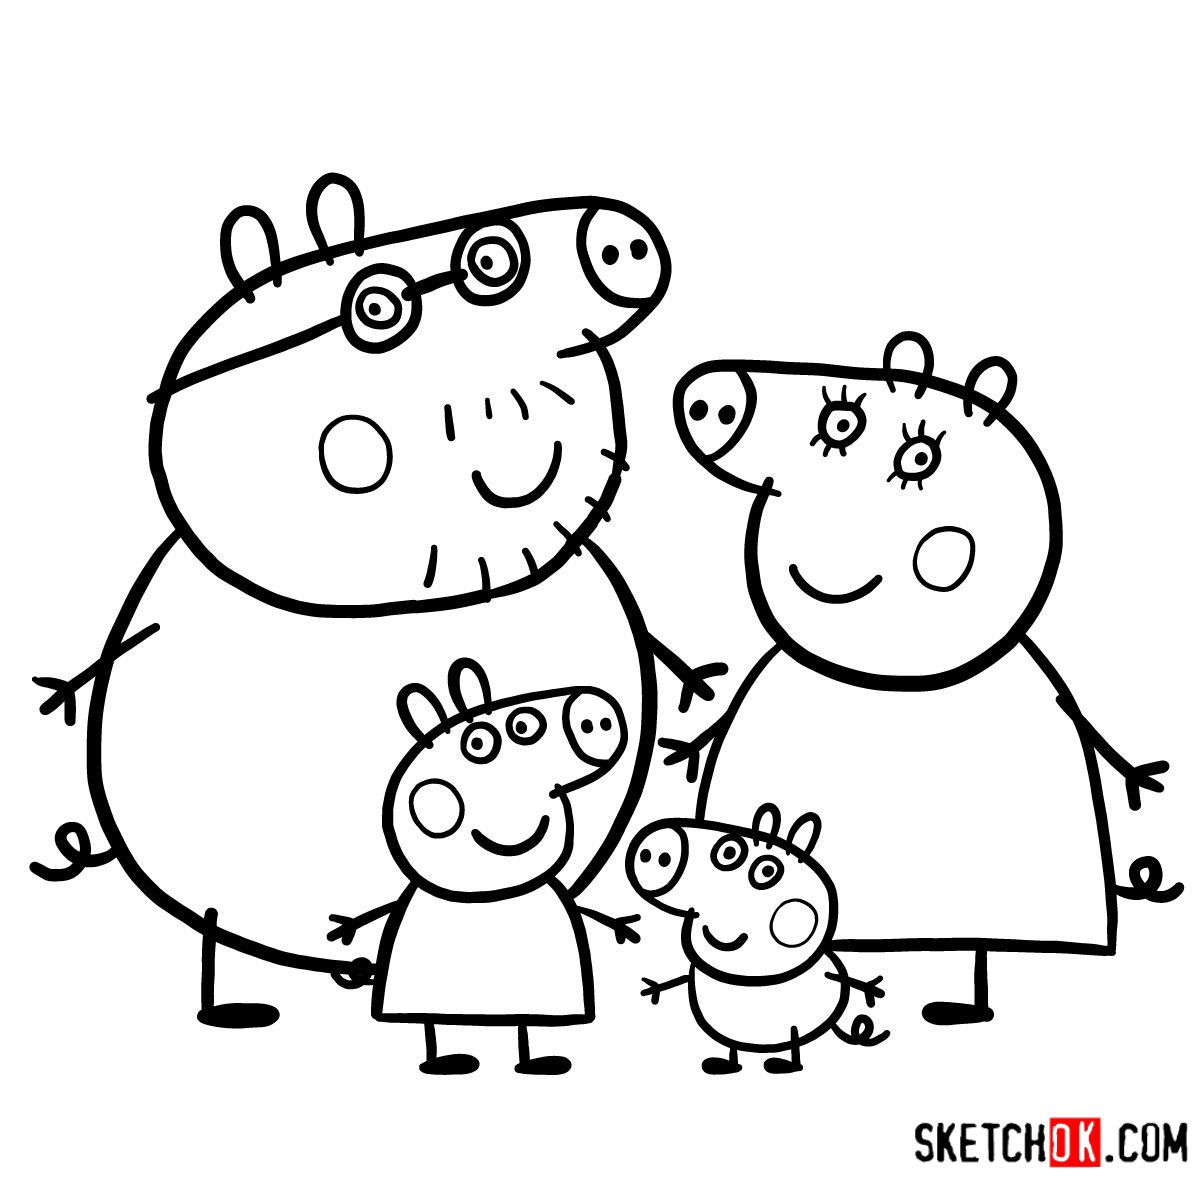 How To Draw Peppa Pig S Family Together Step By Step Drawing Tutorials Peppa Pig Coloring Pages Peppa Pig Colouring Peppa Pig Cartoon